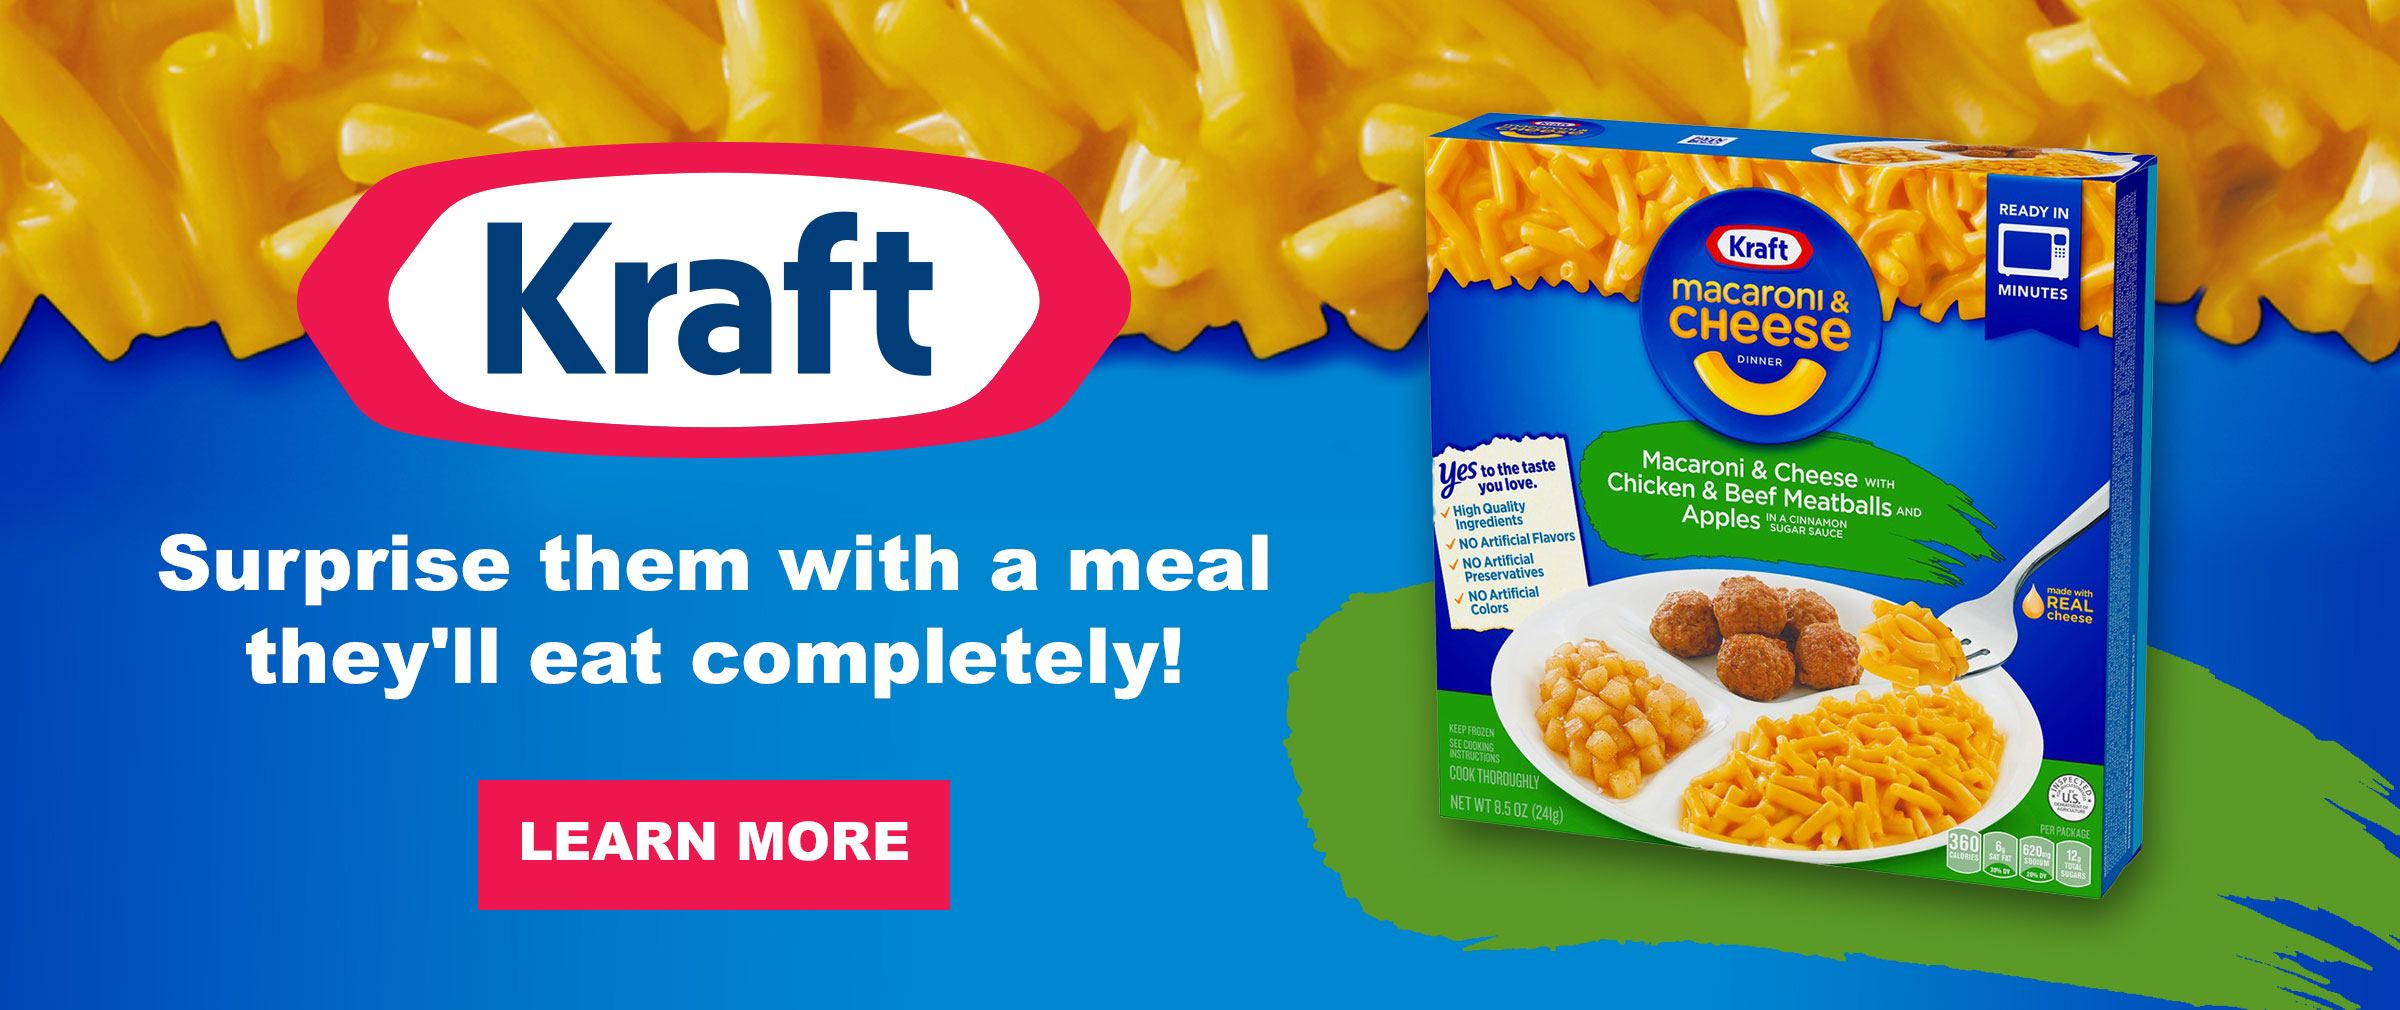 FrozenFoodMonth_Kraft-webslider